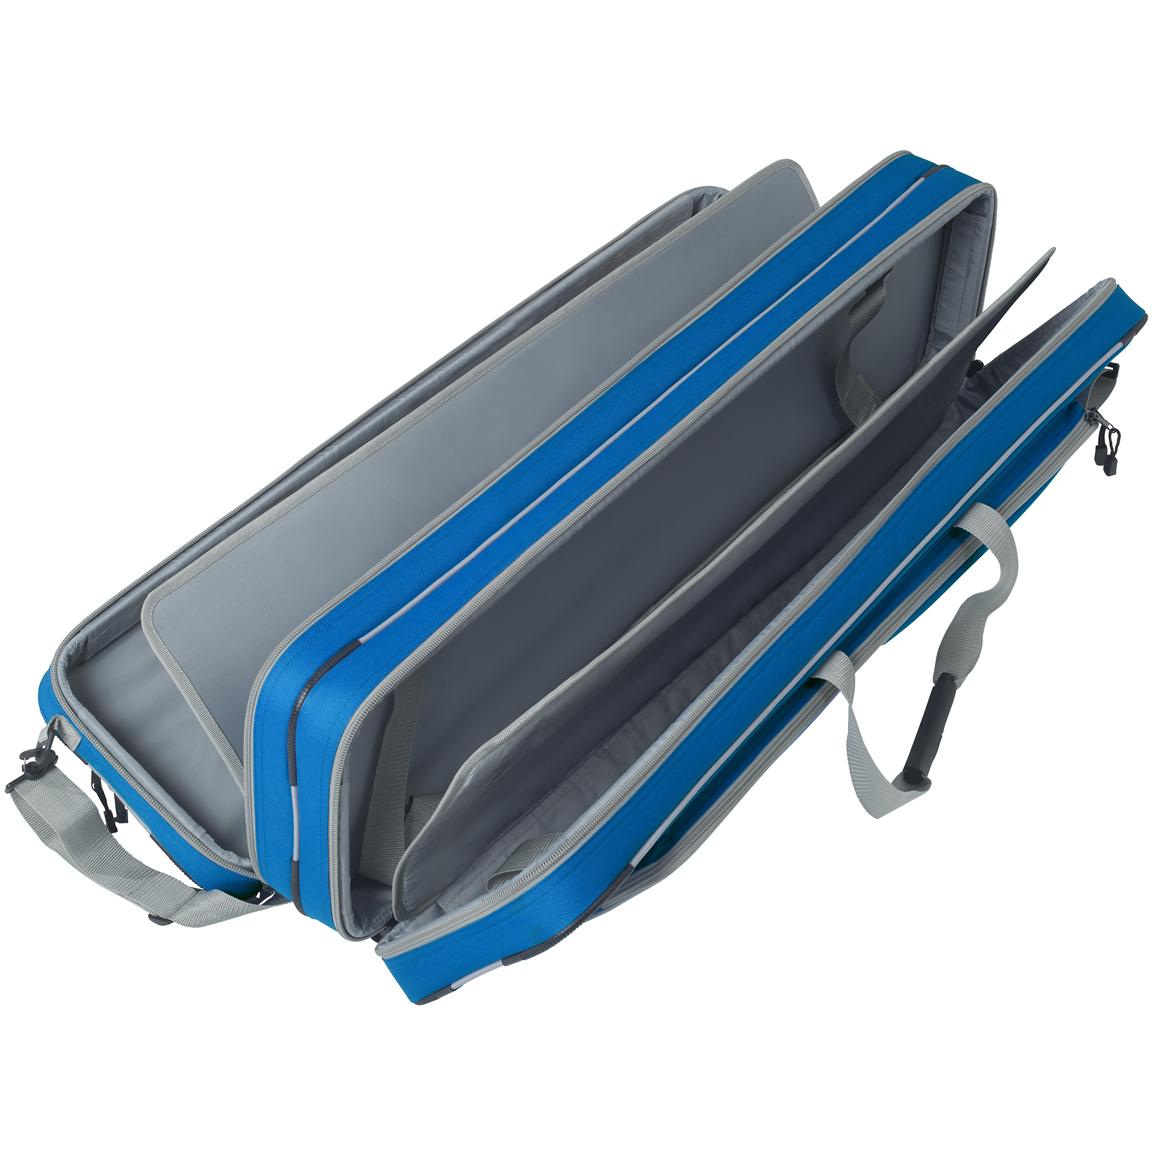 Clam ice fishing rod locker 424245 ice fishing gear at for Ice fishing gear list